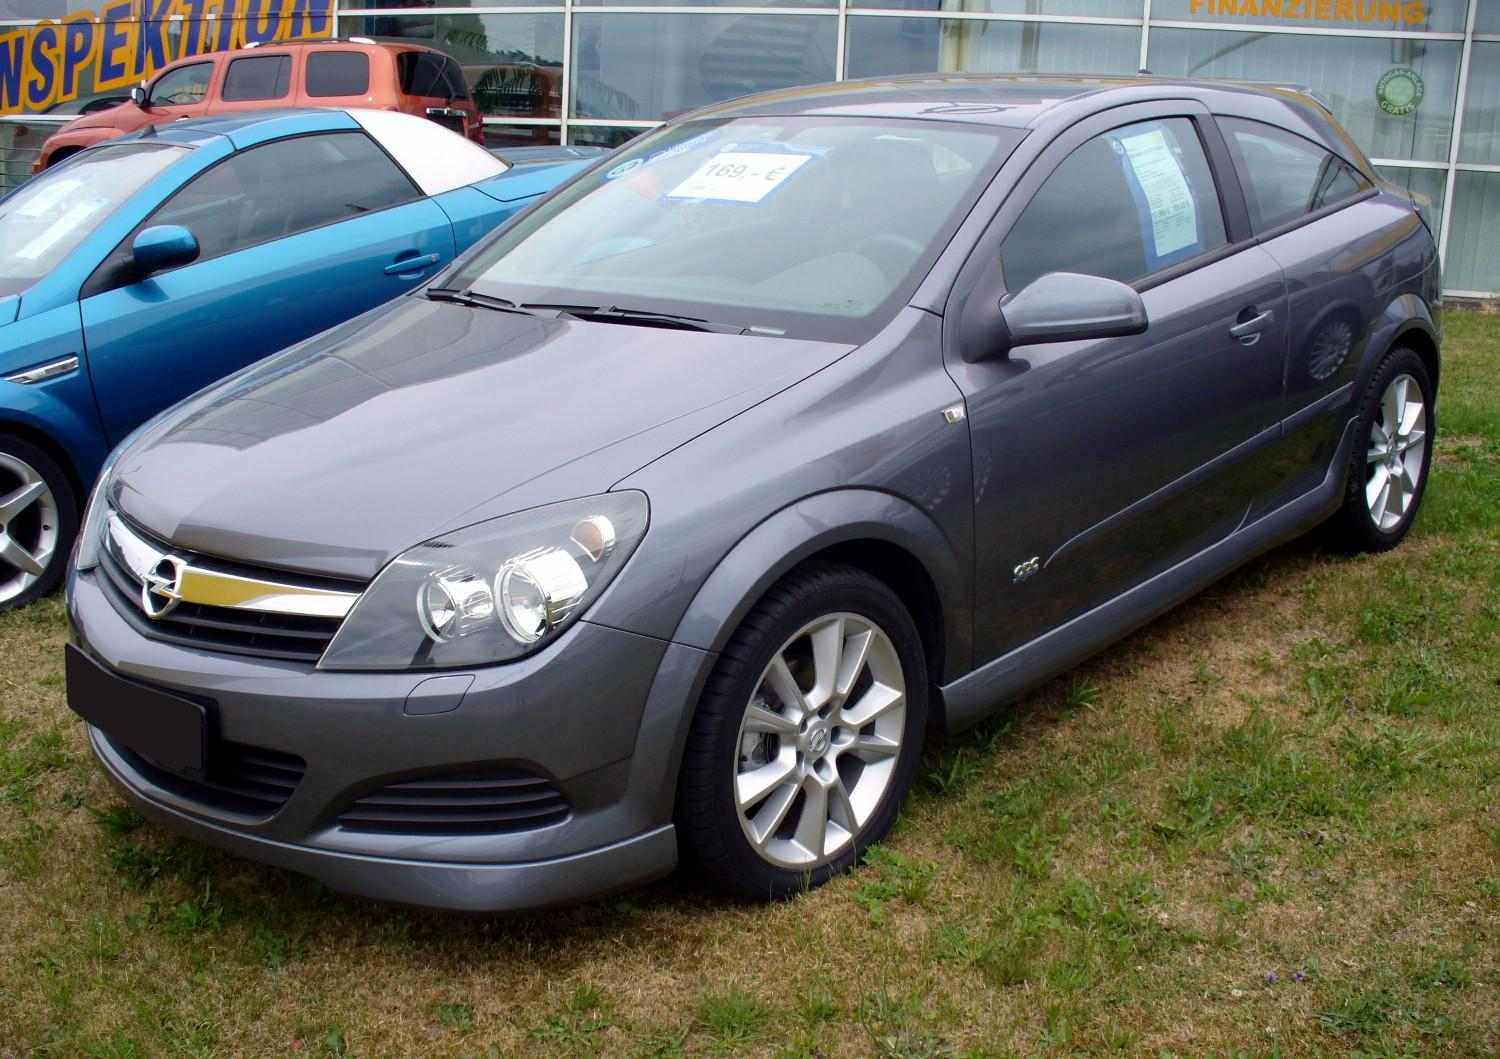 opel astra gtc opc photos 3 on better parts ltd. Black Bedroom Furniture Sets. Home Design Ideas